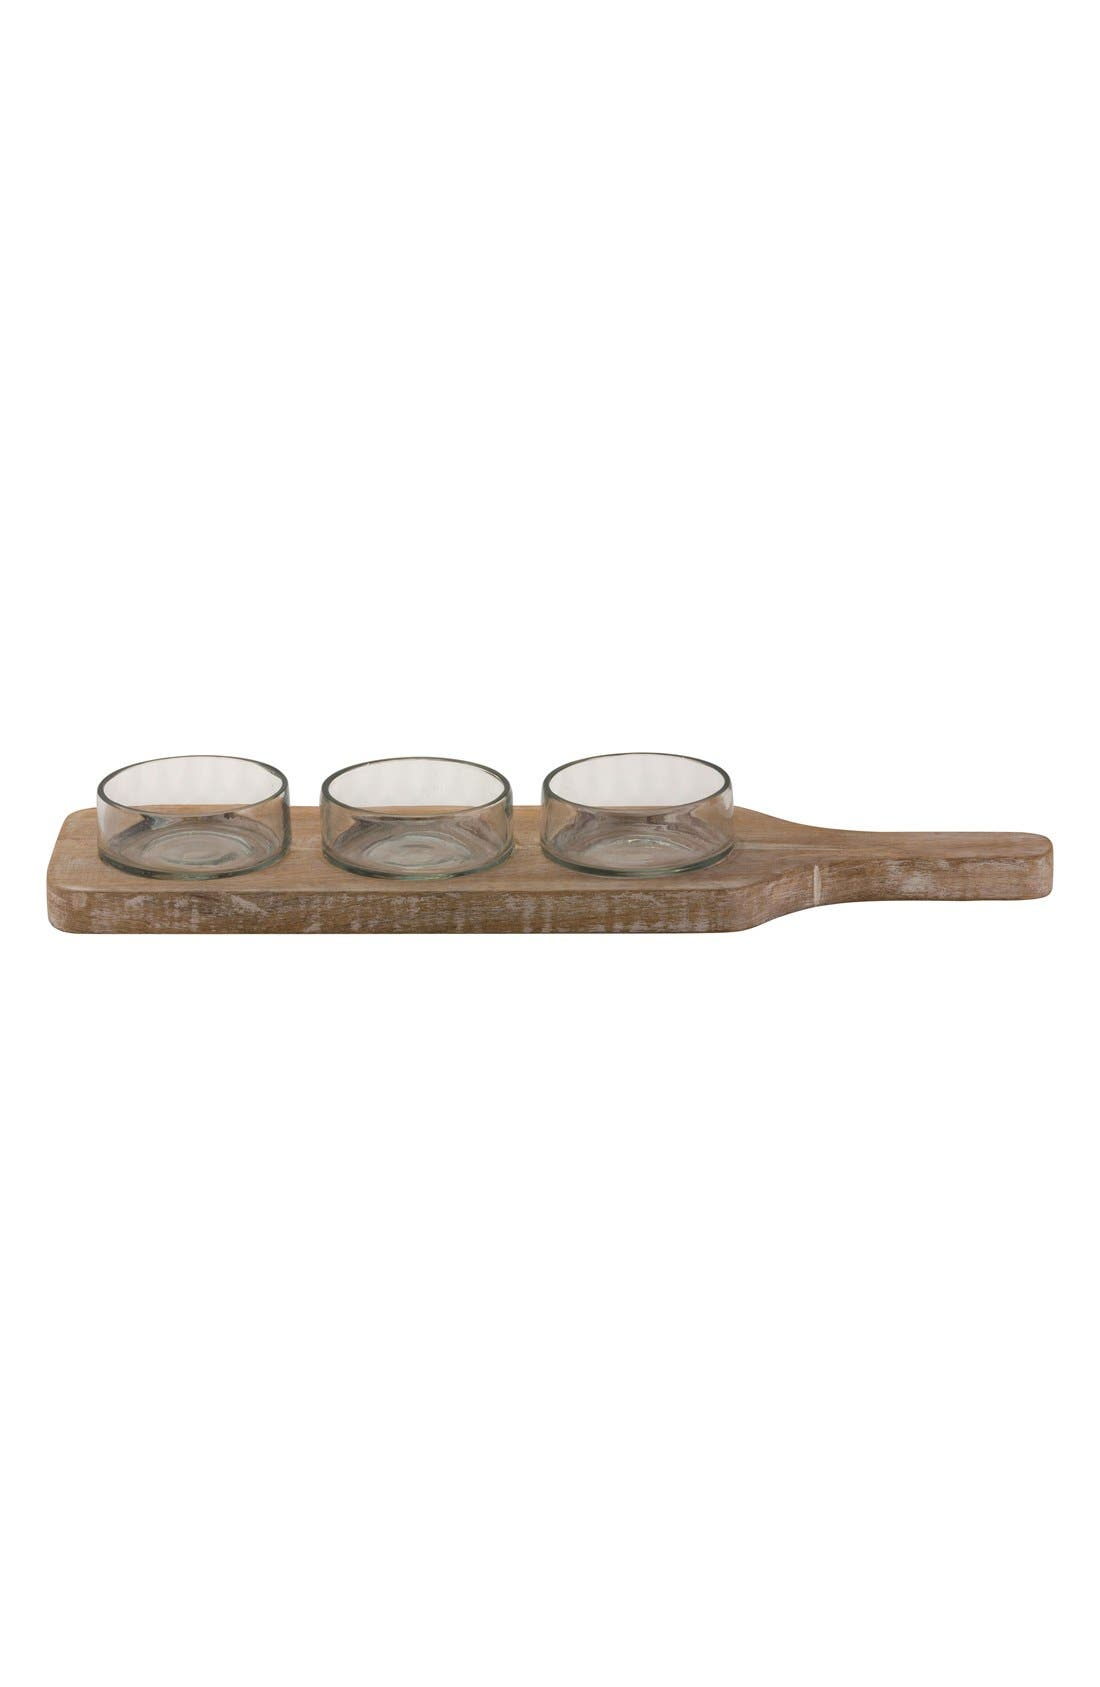 10 Strawberry Street Wooden Condiment Tray & Glass Bowls (4-Piece)